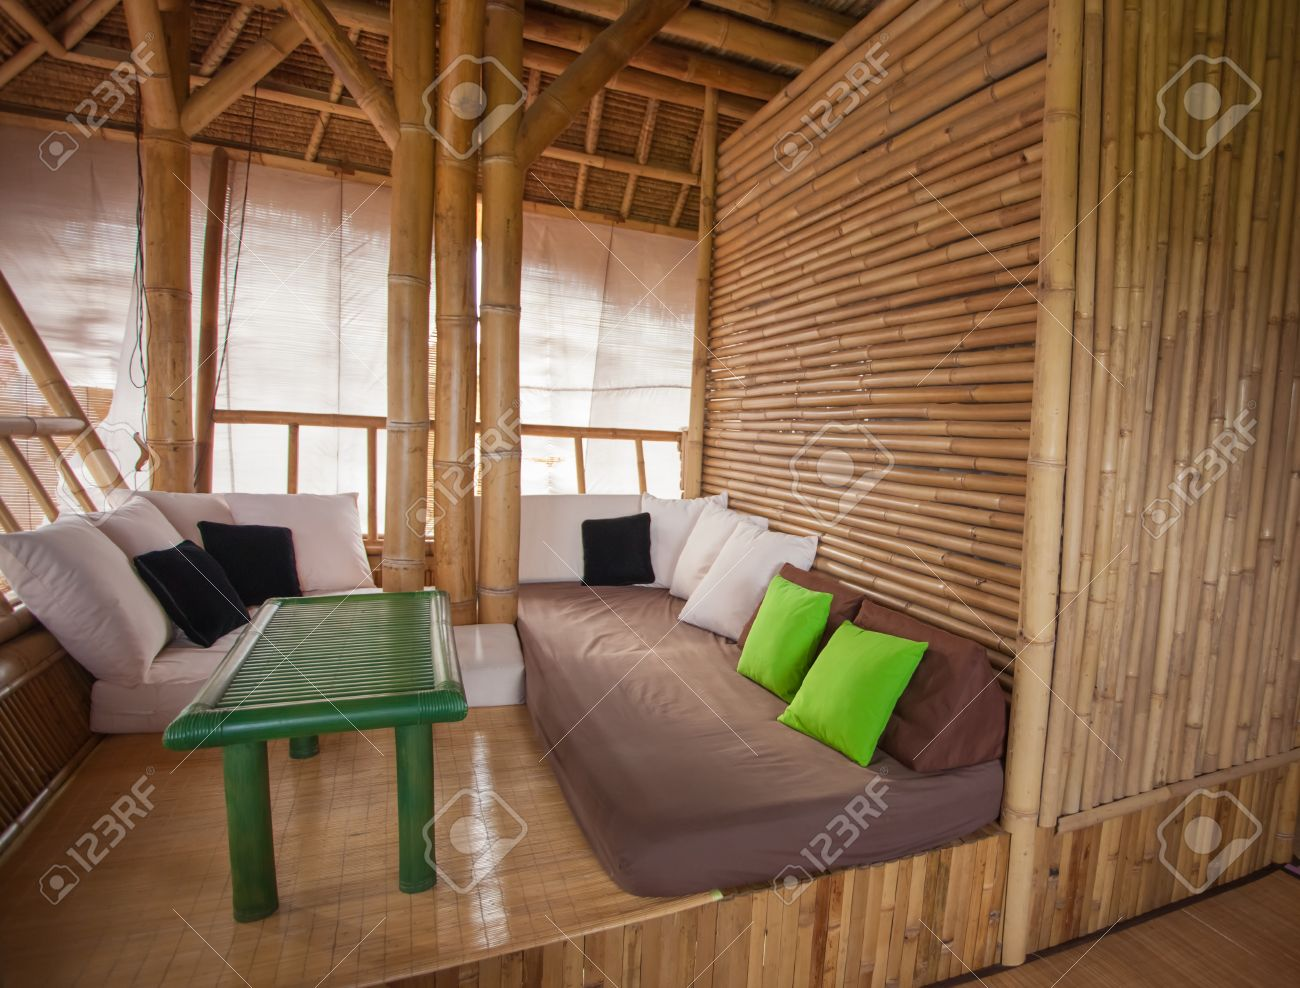 bamboo house stock photos. royalty free bamboo house images and